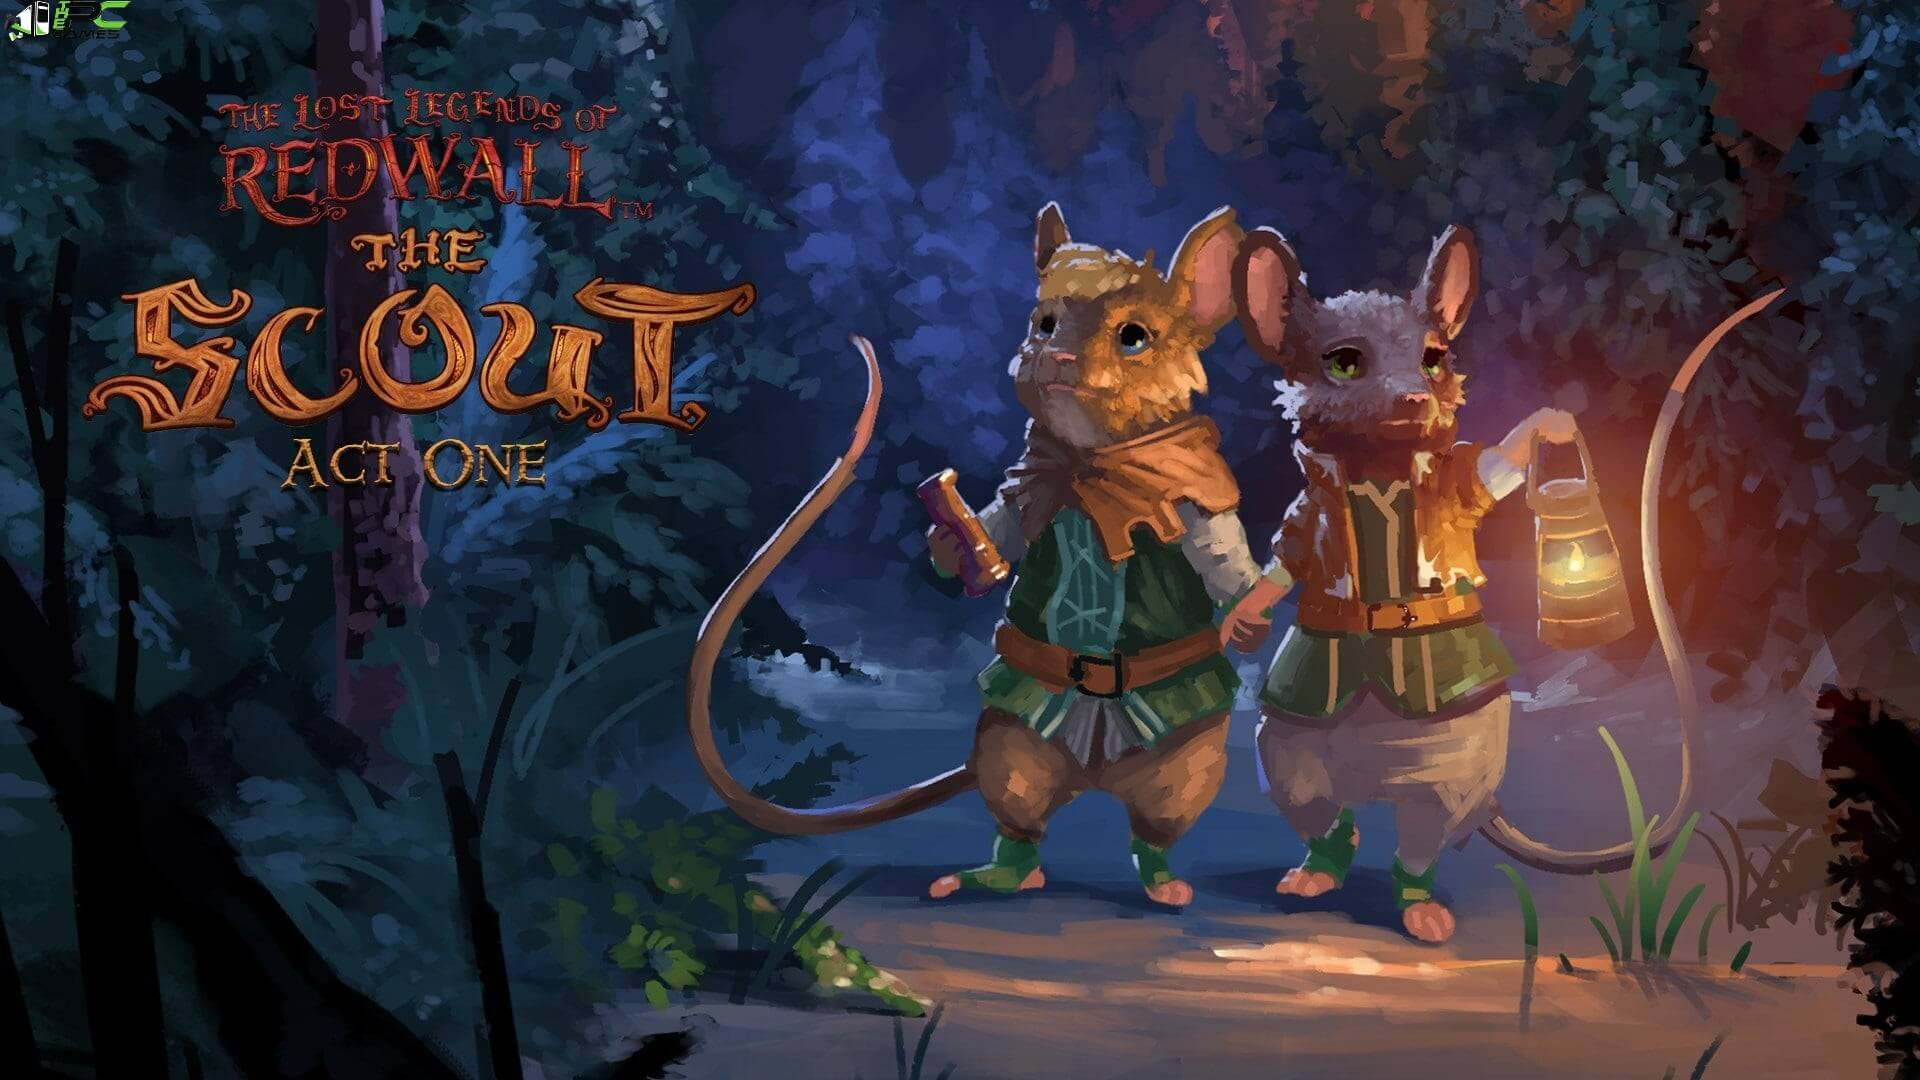 The Lost Legends of Redwall The Scout Collector Cover